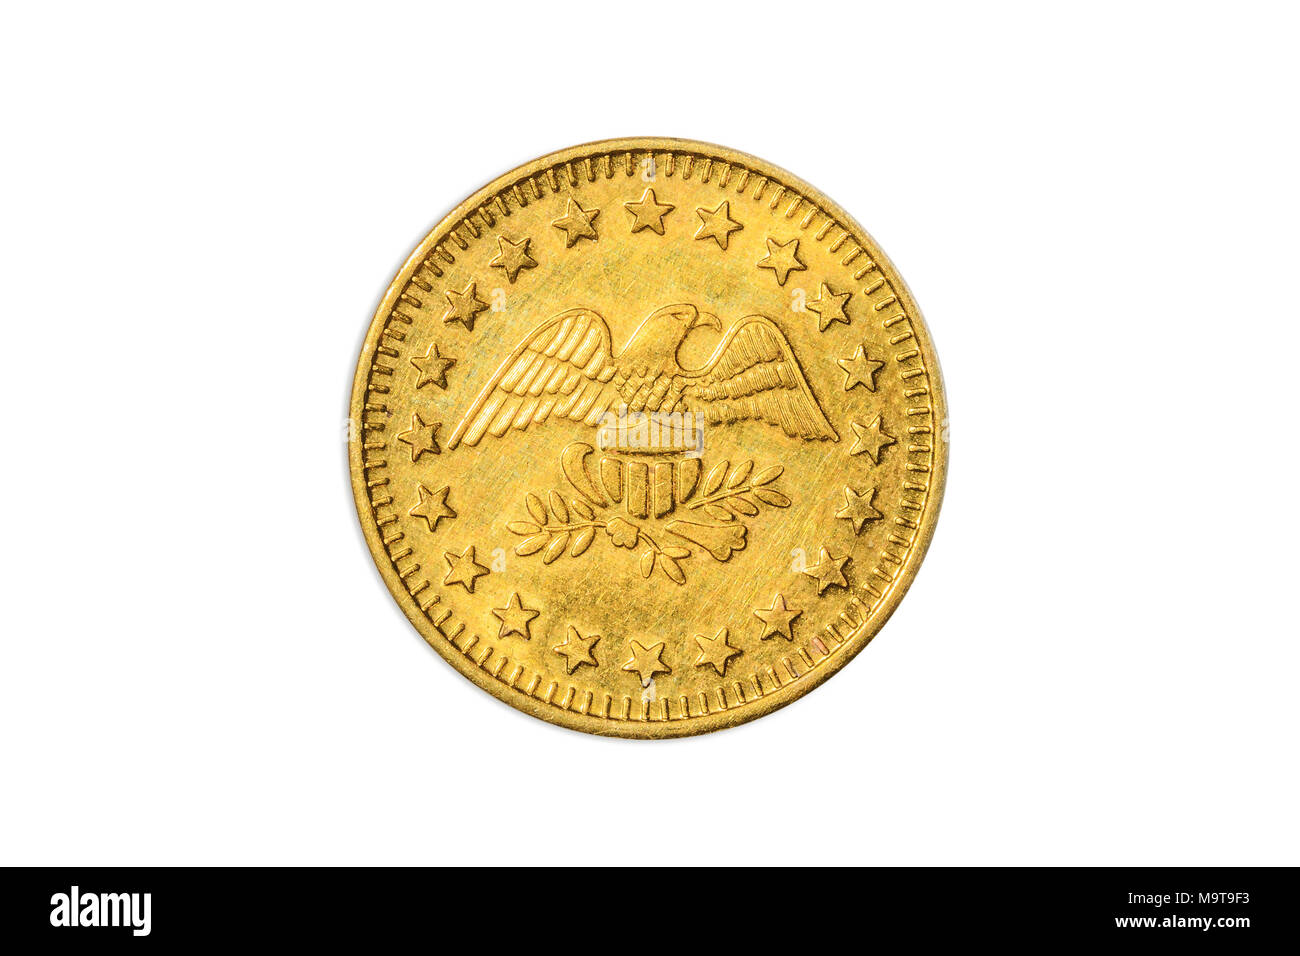 American golden coin meter token with eagle and stars of America, close up of the tail side with the American eagle. Isolated on white studio background. - Stock Image